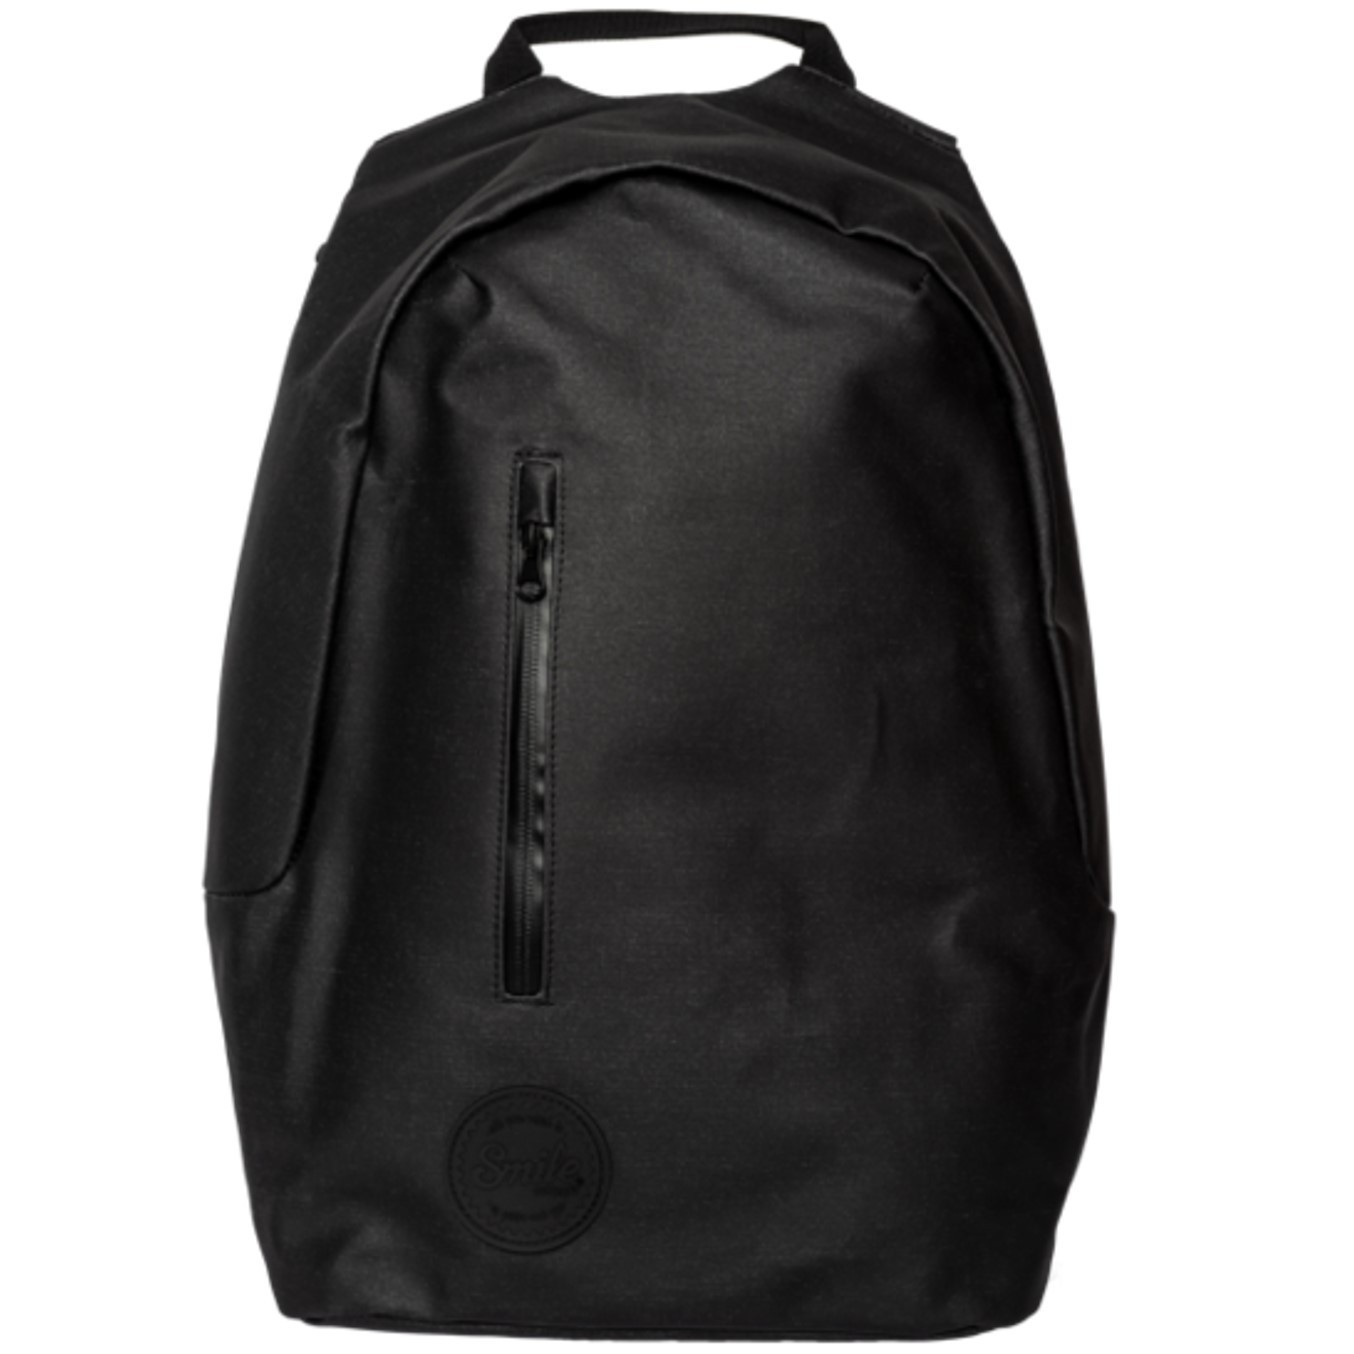 Bolsa Ordenador Portatil Smile The Rock Negra